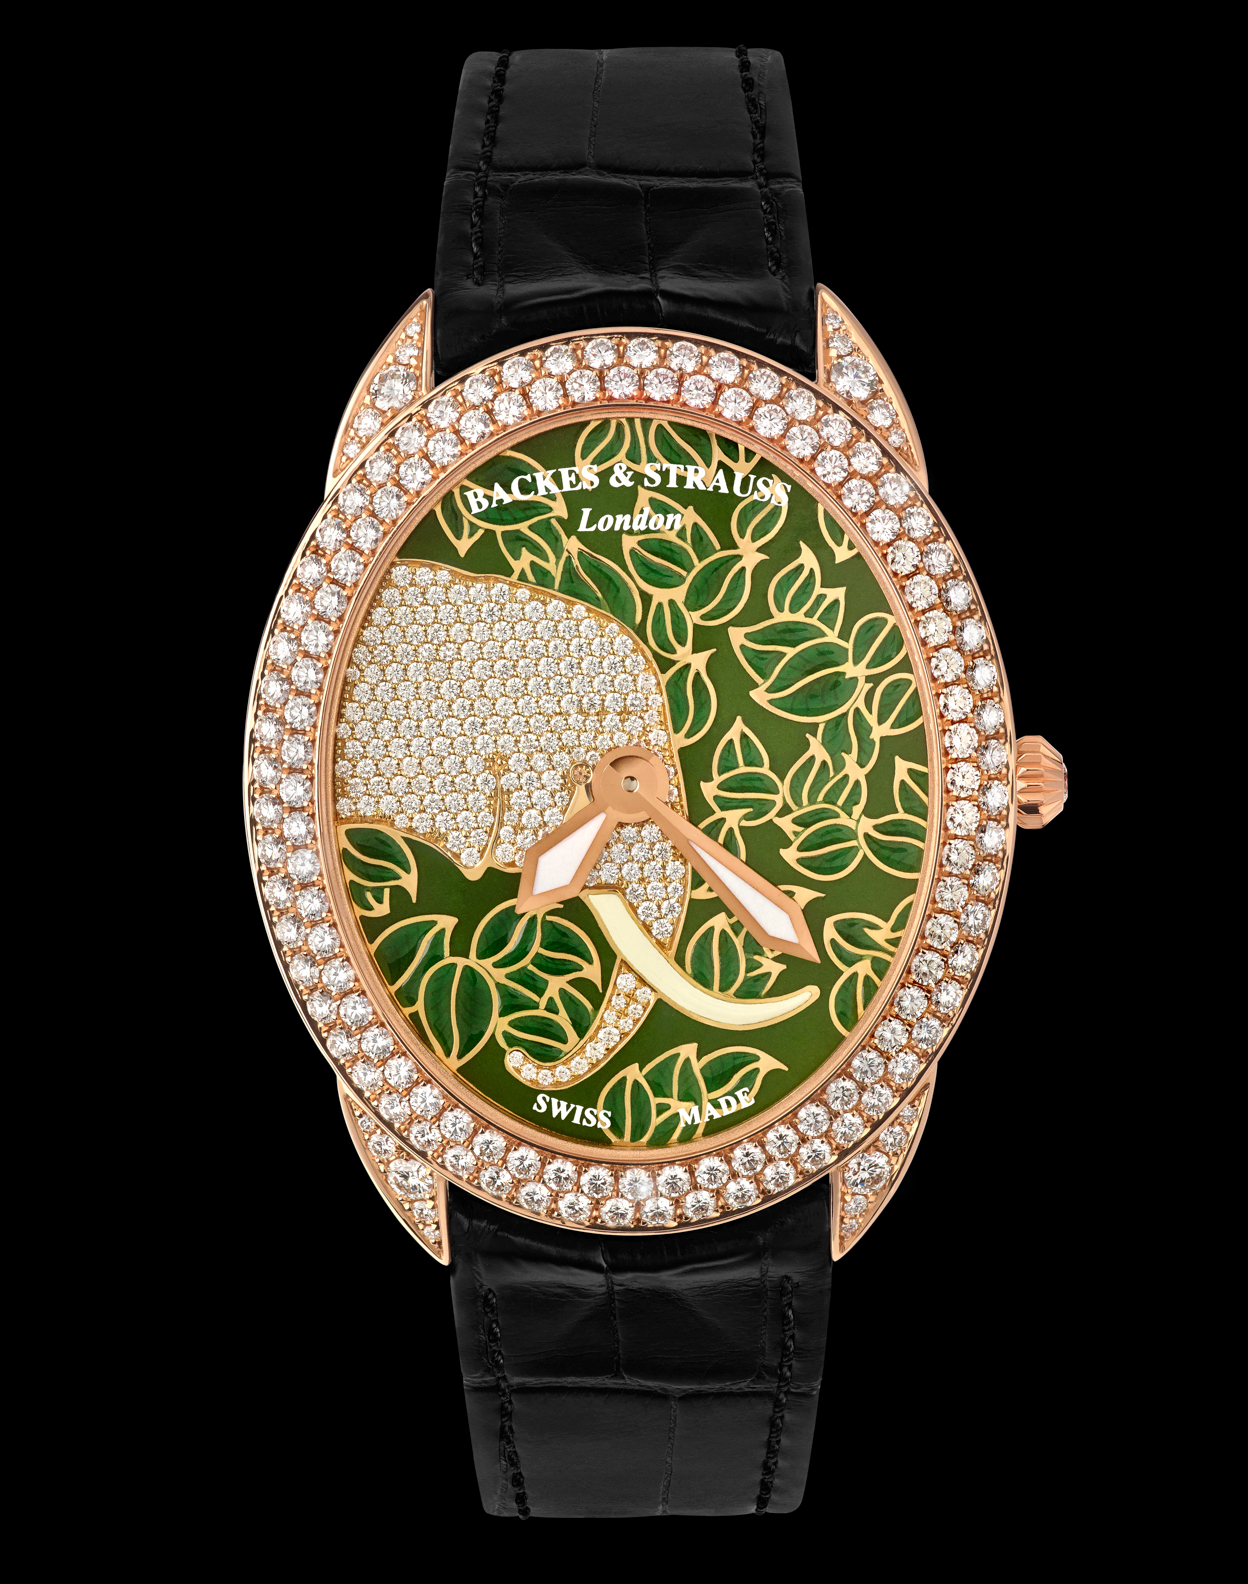 Tears of the African Elephant diamond encrusted watch